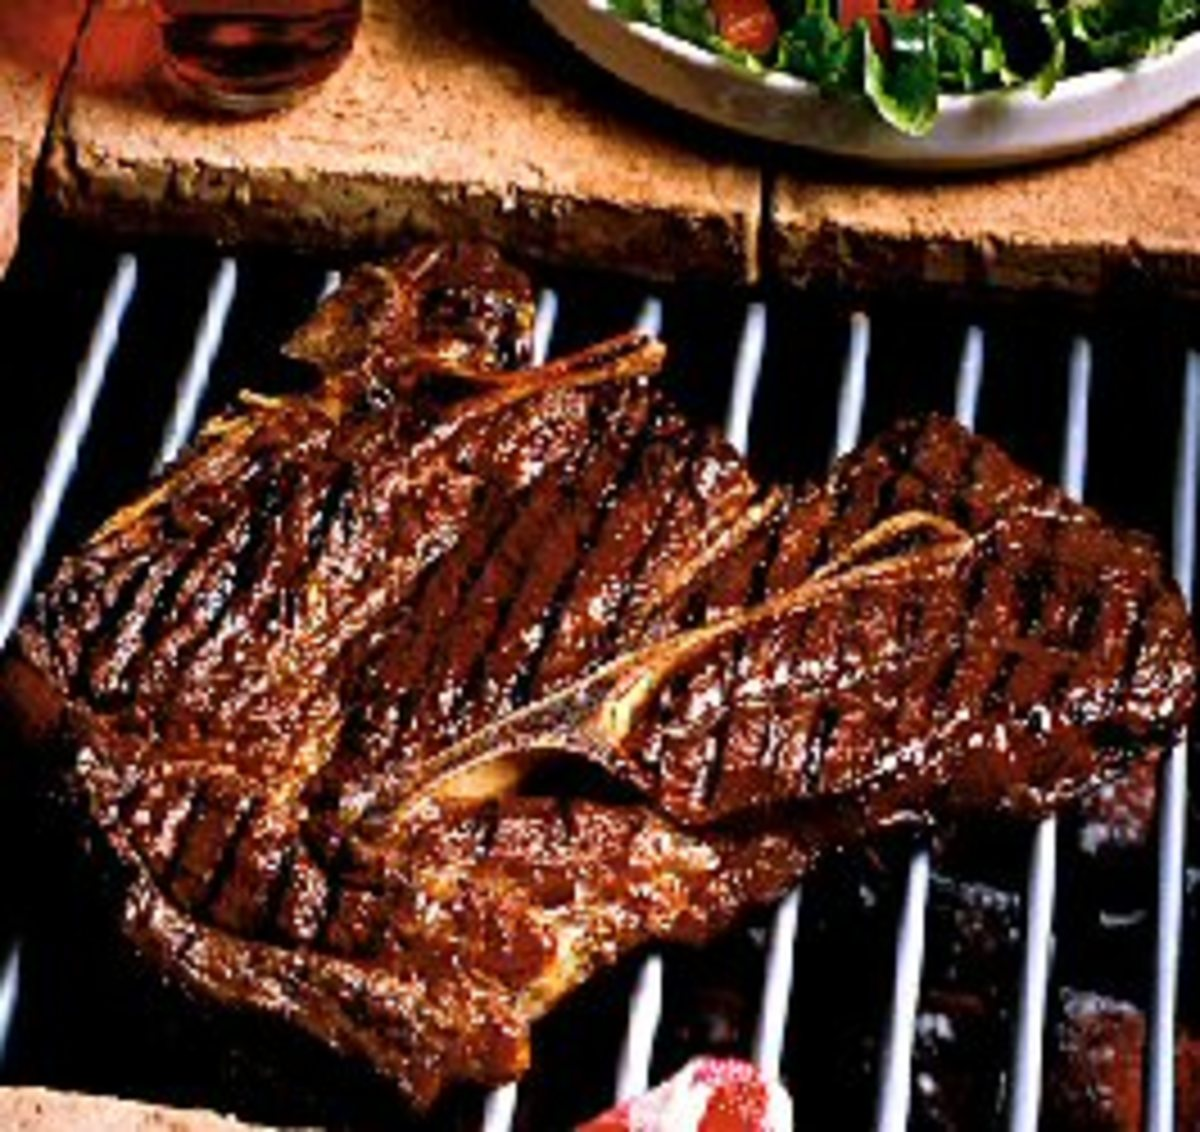 Steak house secrets. Make great steak at home every time!